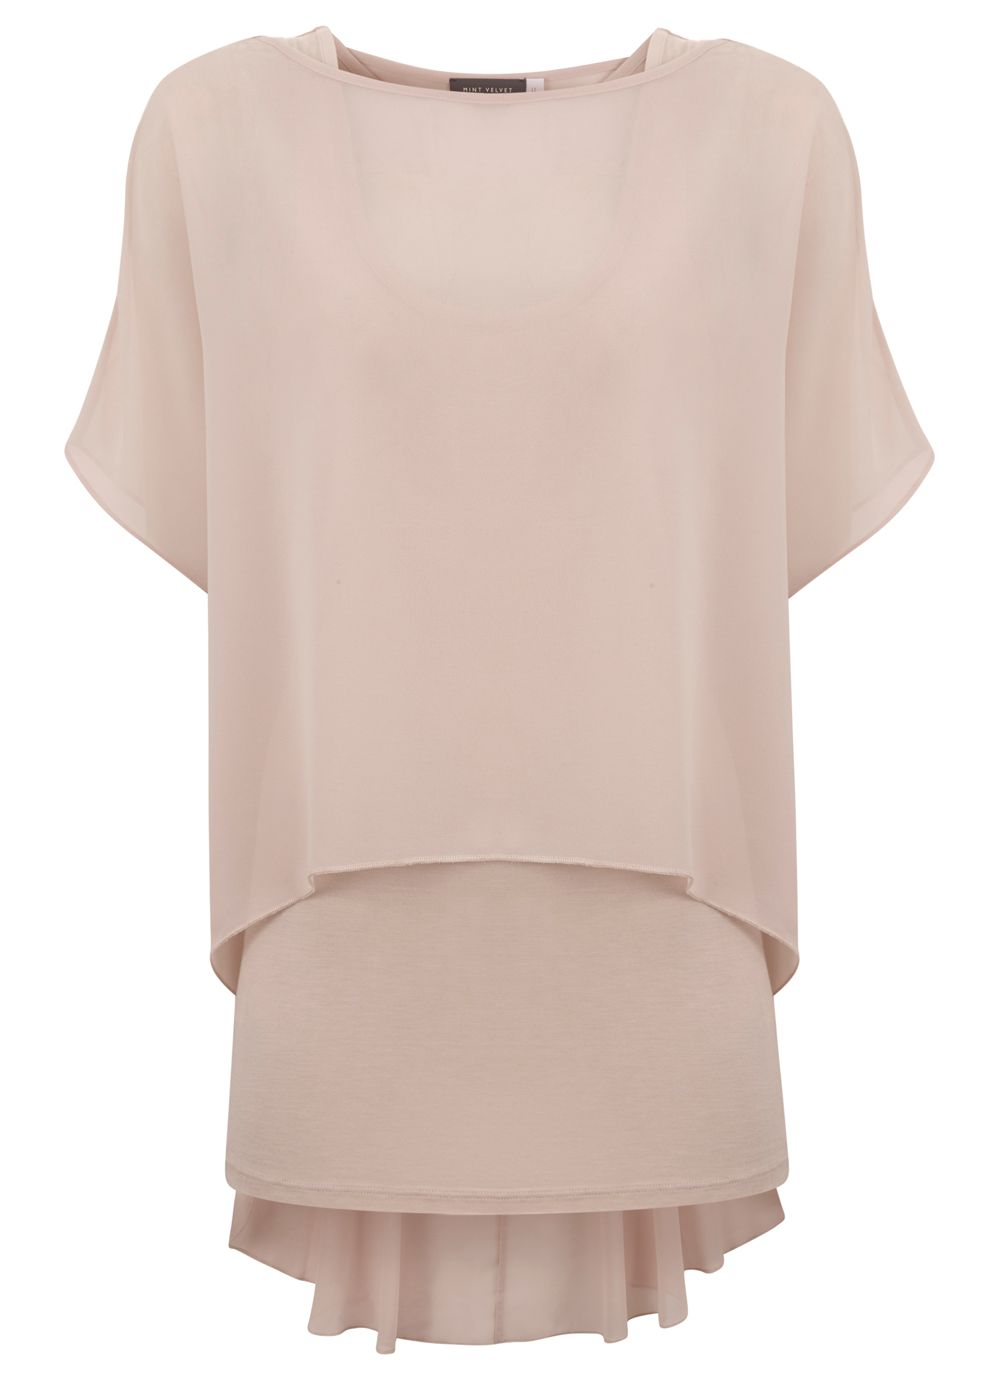 Nude Peplum Double Layer Top